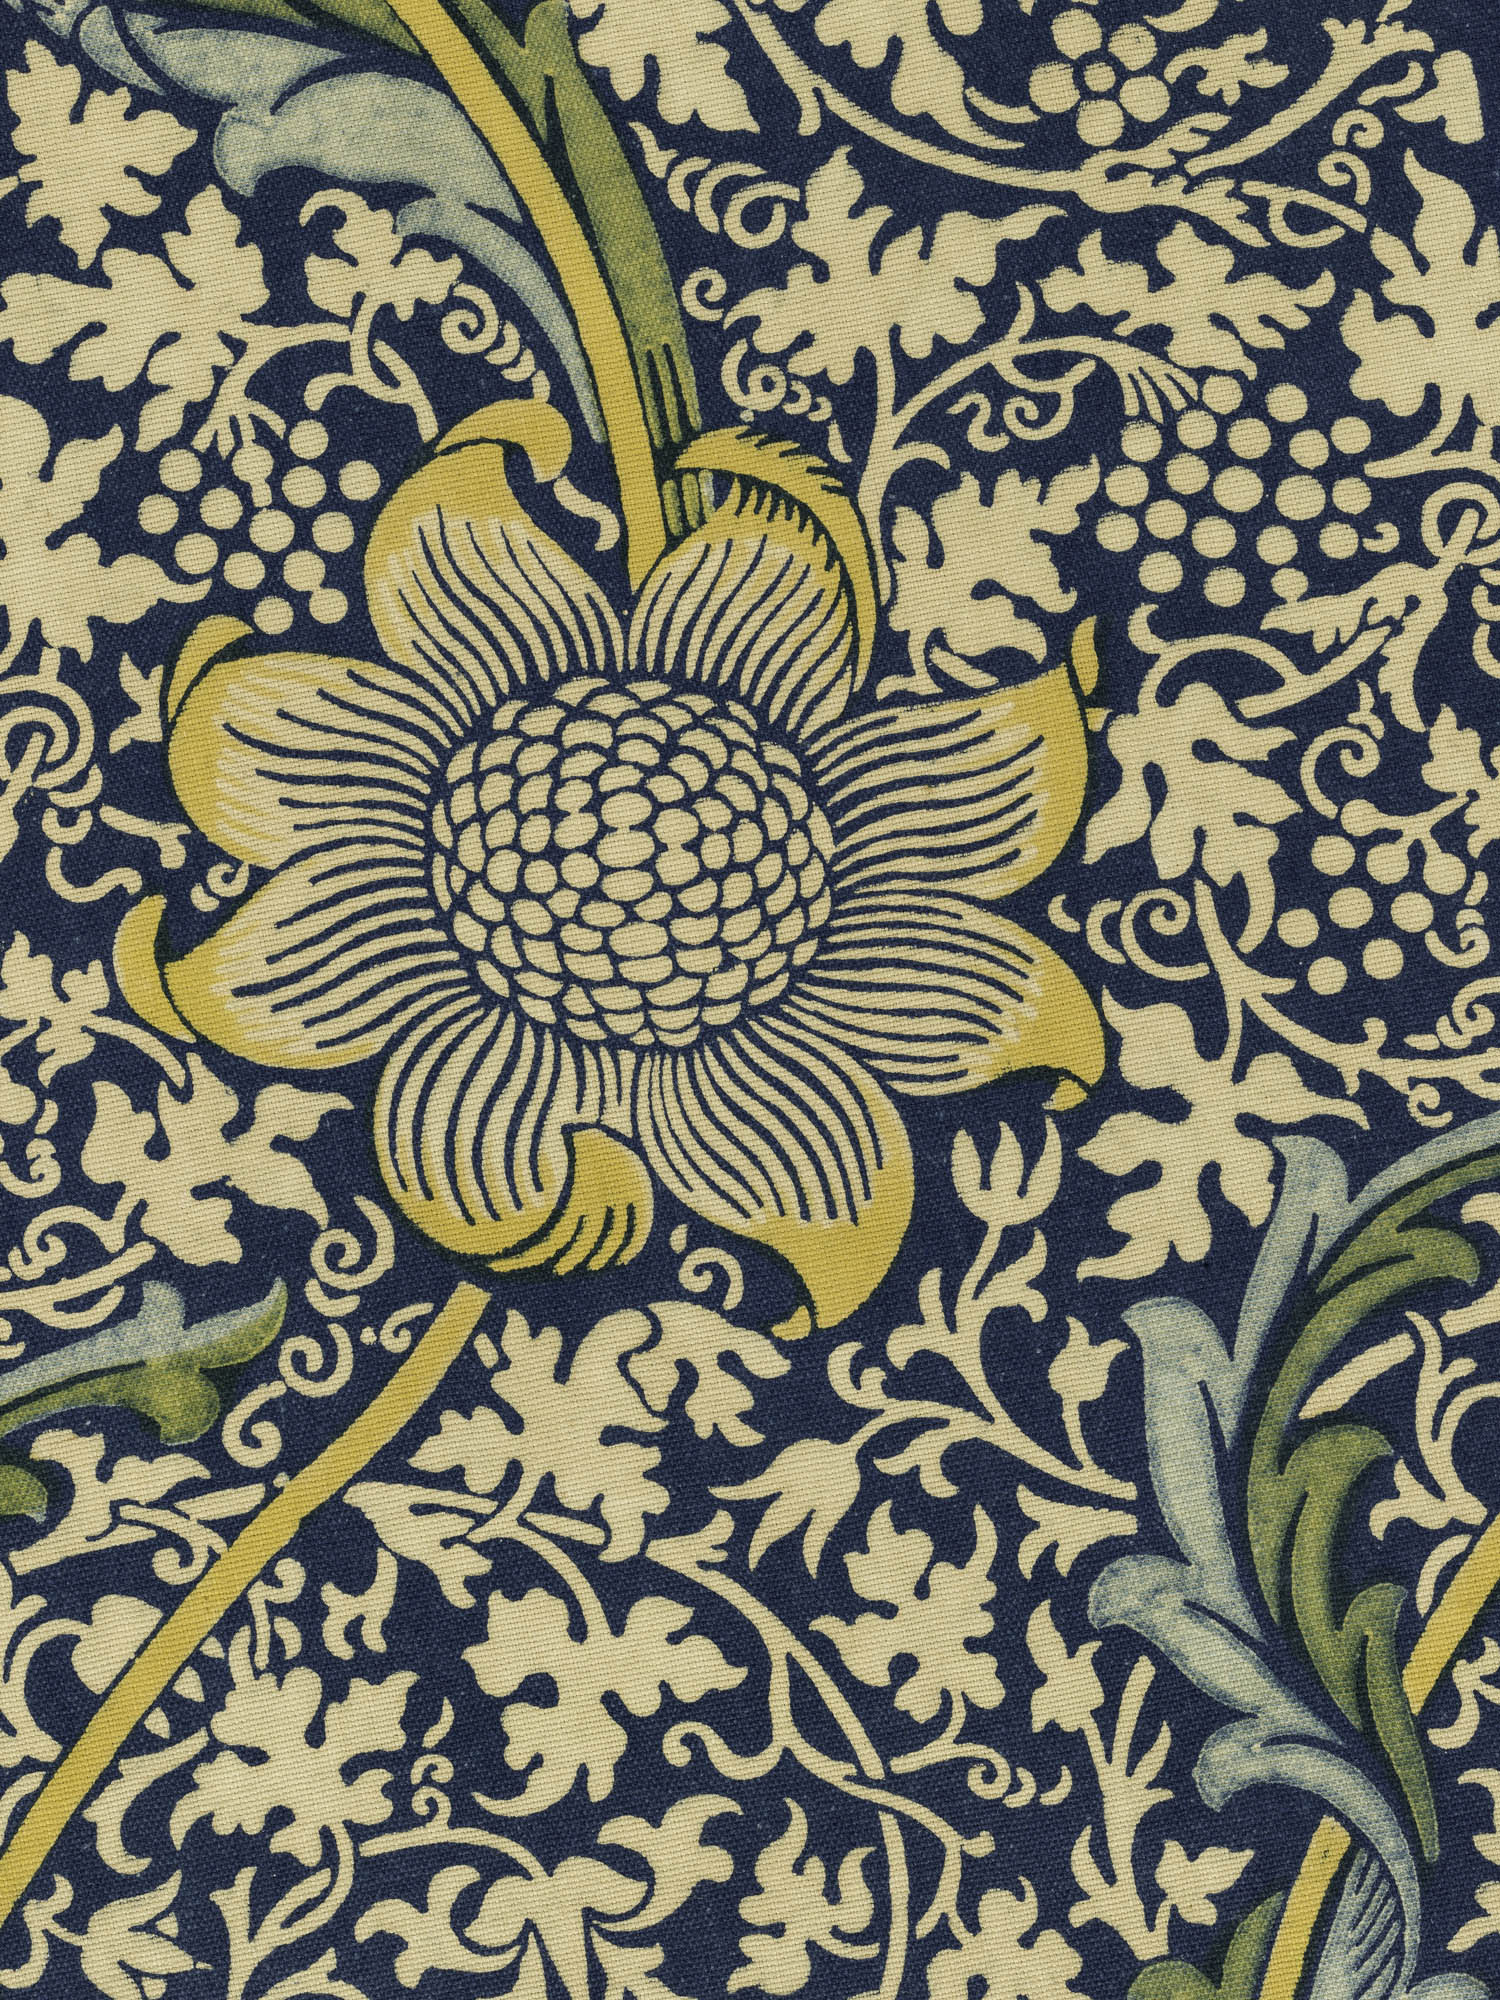 Honeysuckle William Morris Furnishing fabric